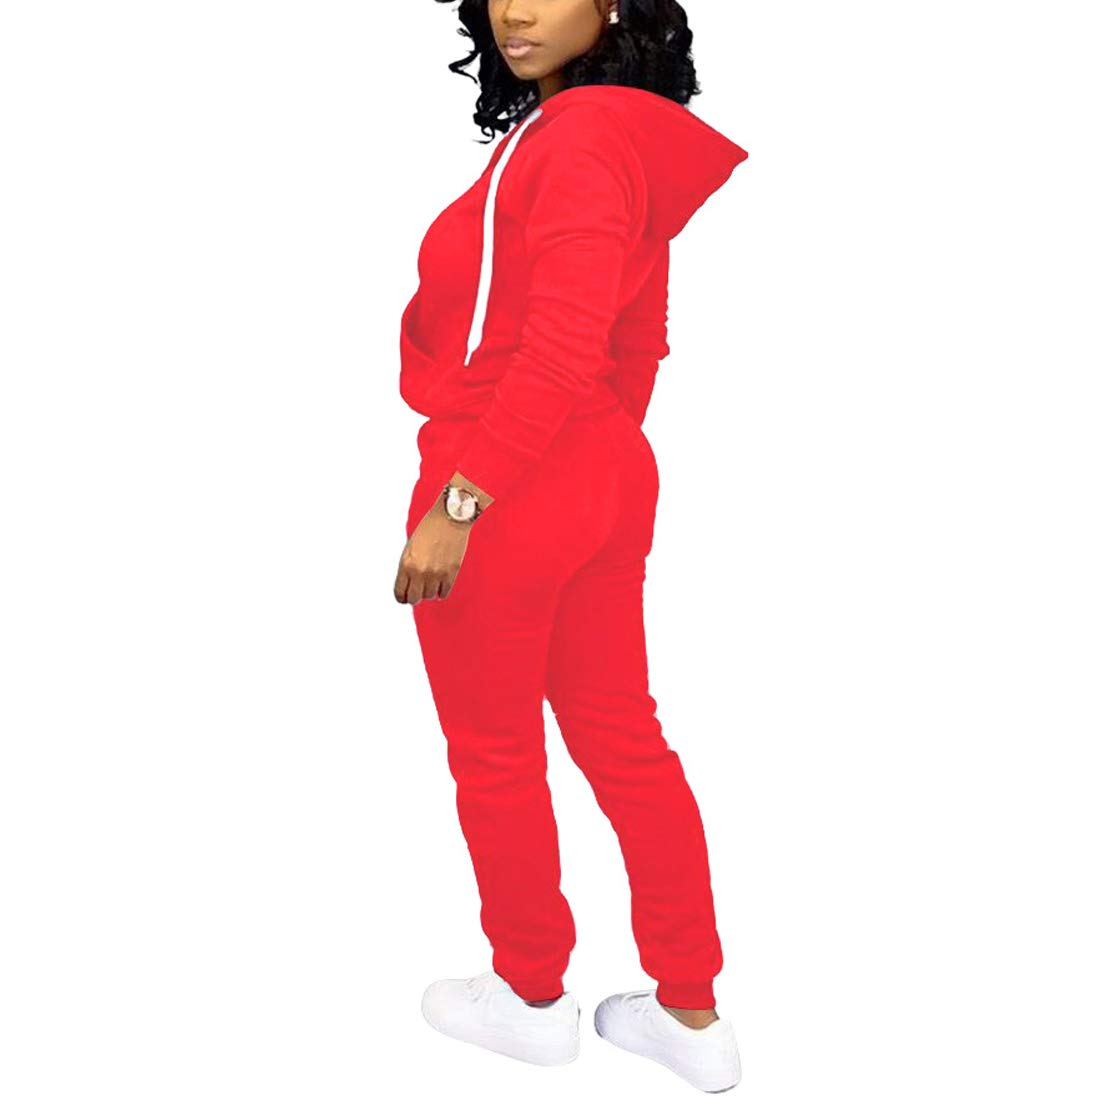 Nimsruc Womens 2 Piece Tracksuit Long Sleeve Casual Patchwork Pants Set